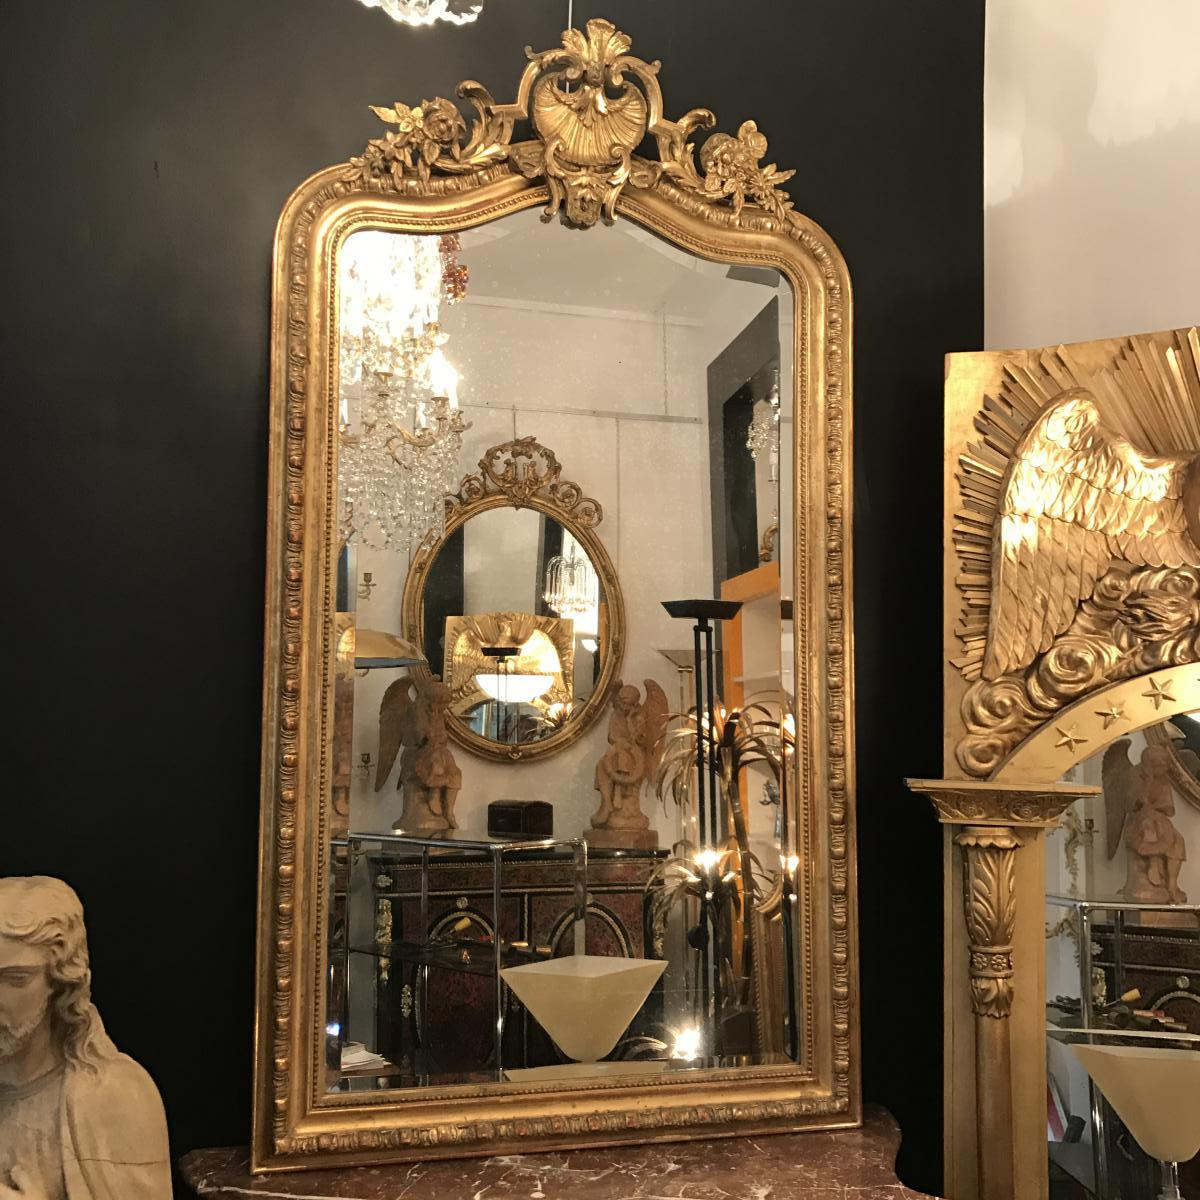 h 163 cm miroir de style louis xv epoque xixeme miroirs. Black Bedroom Furniture Sets. Home Design Ideas